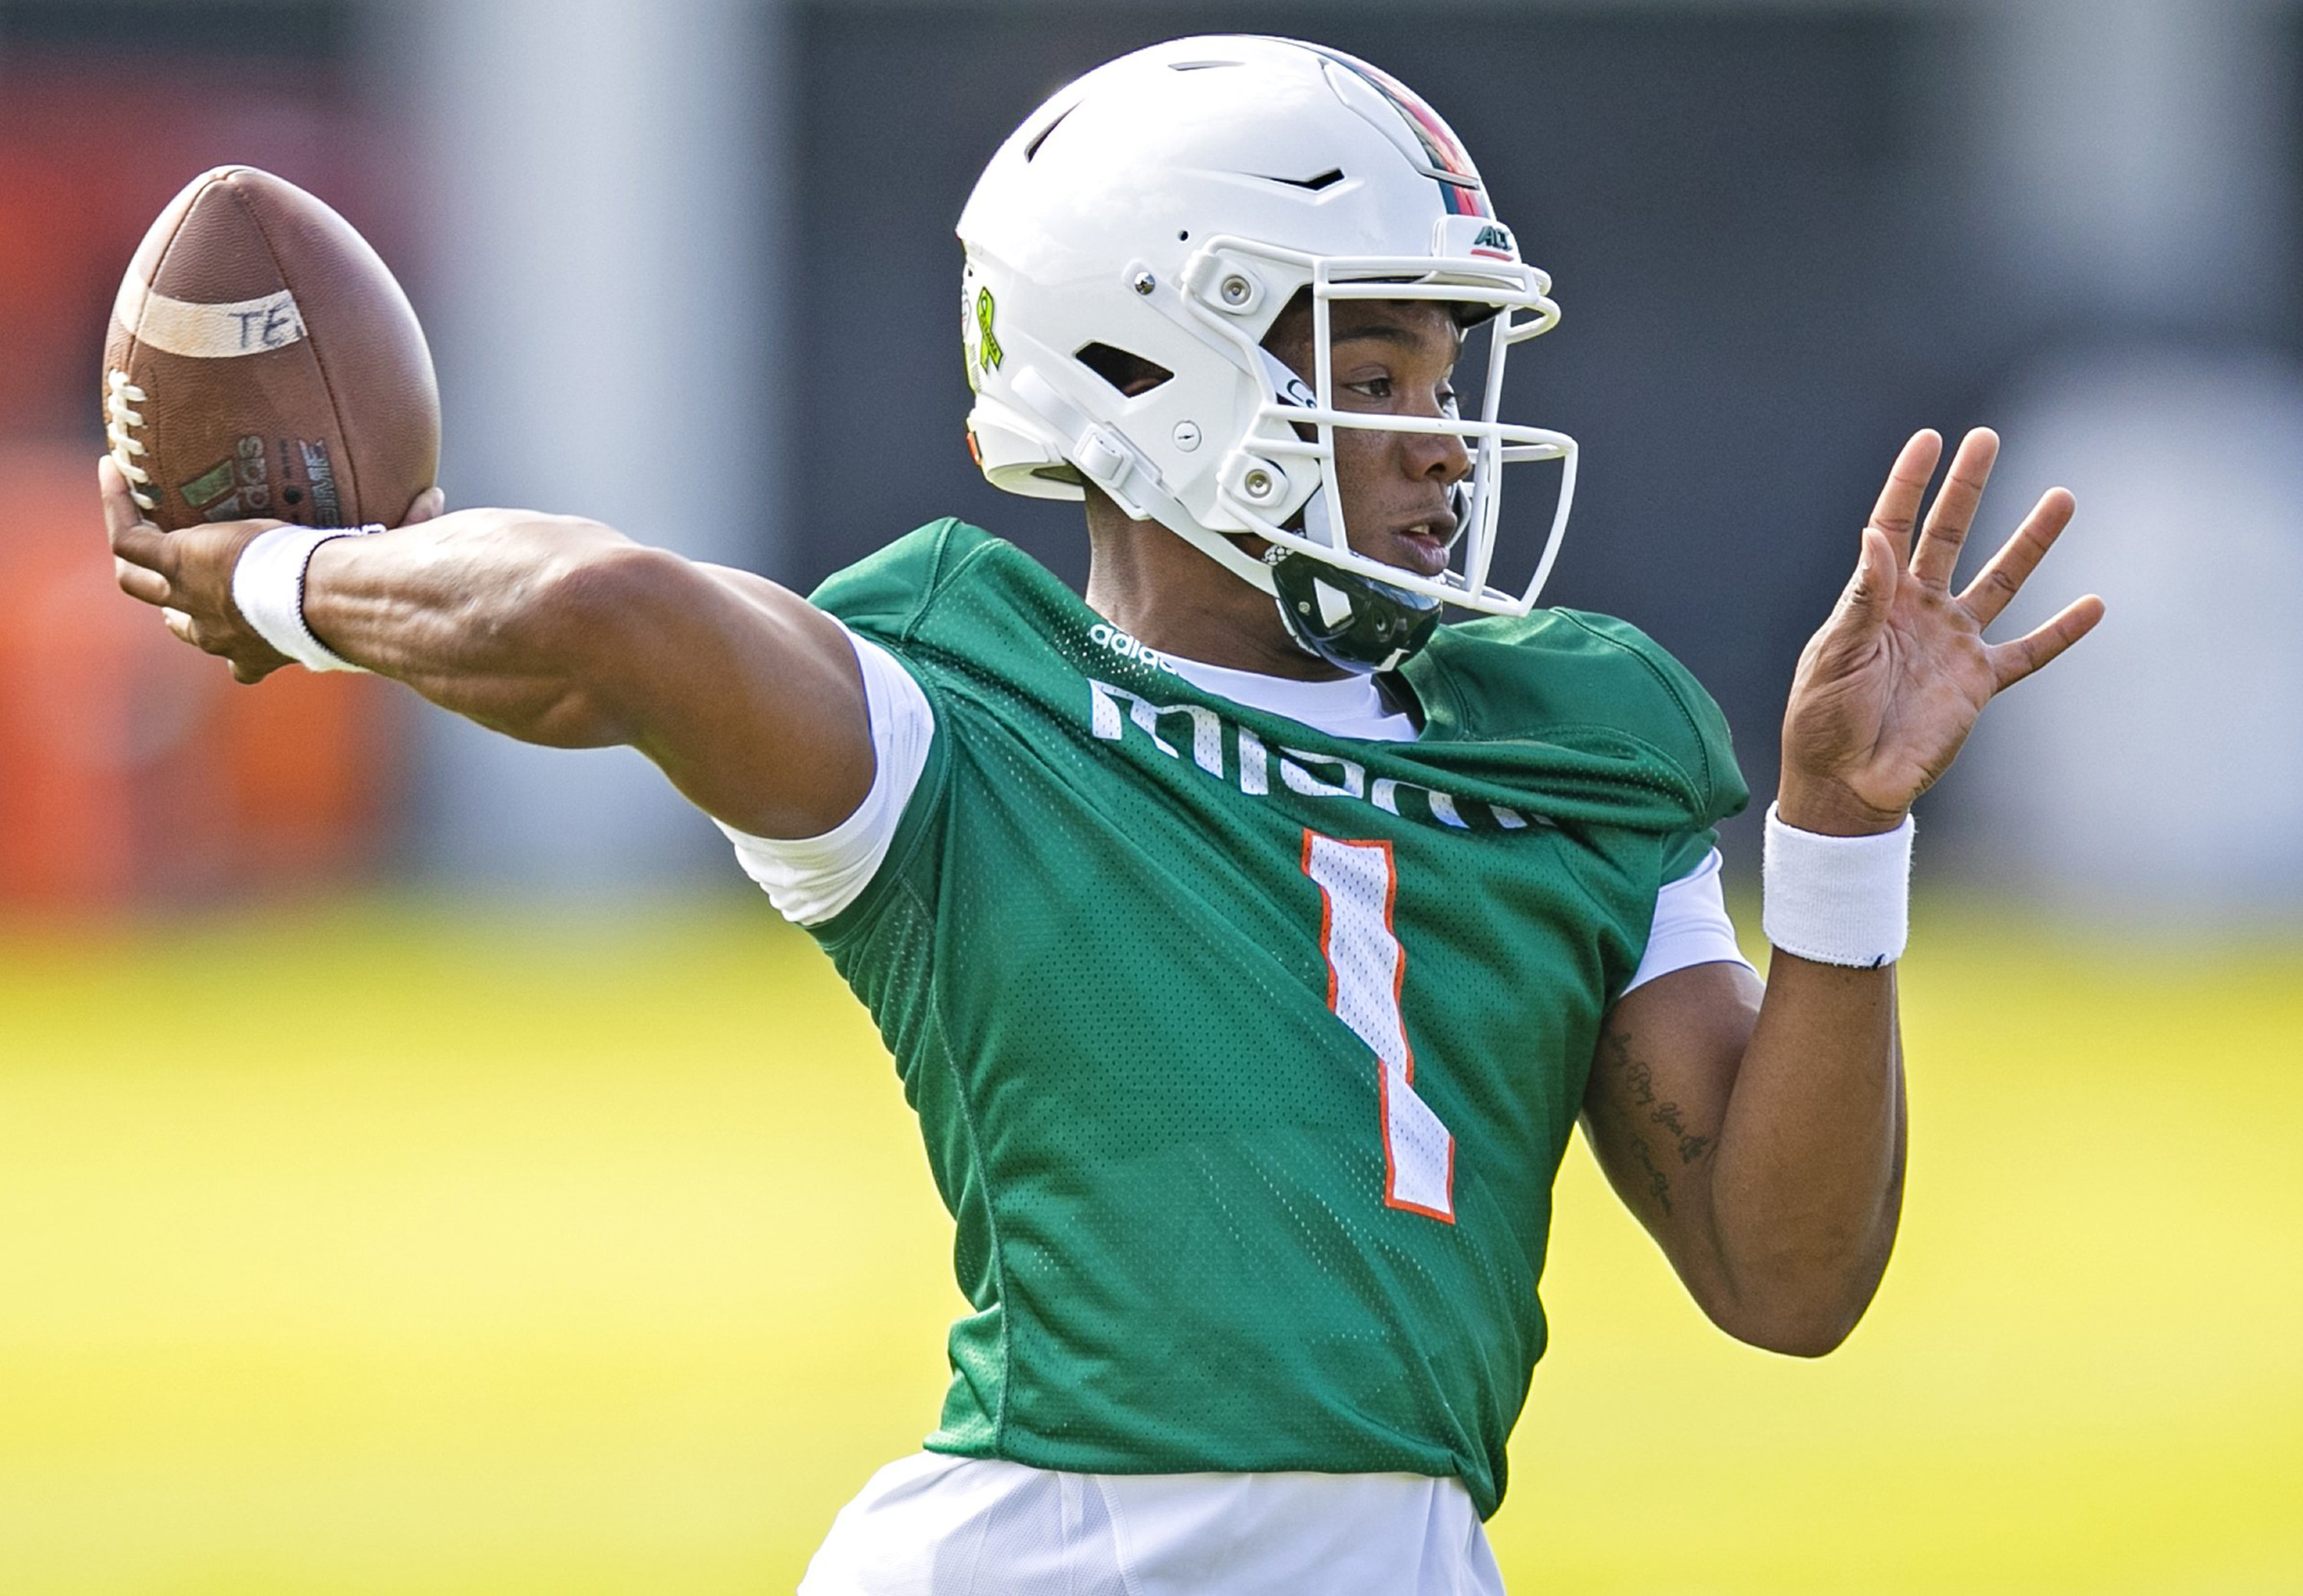 Miami Hurricanes football practice